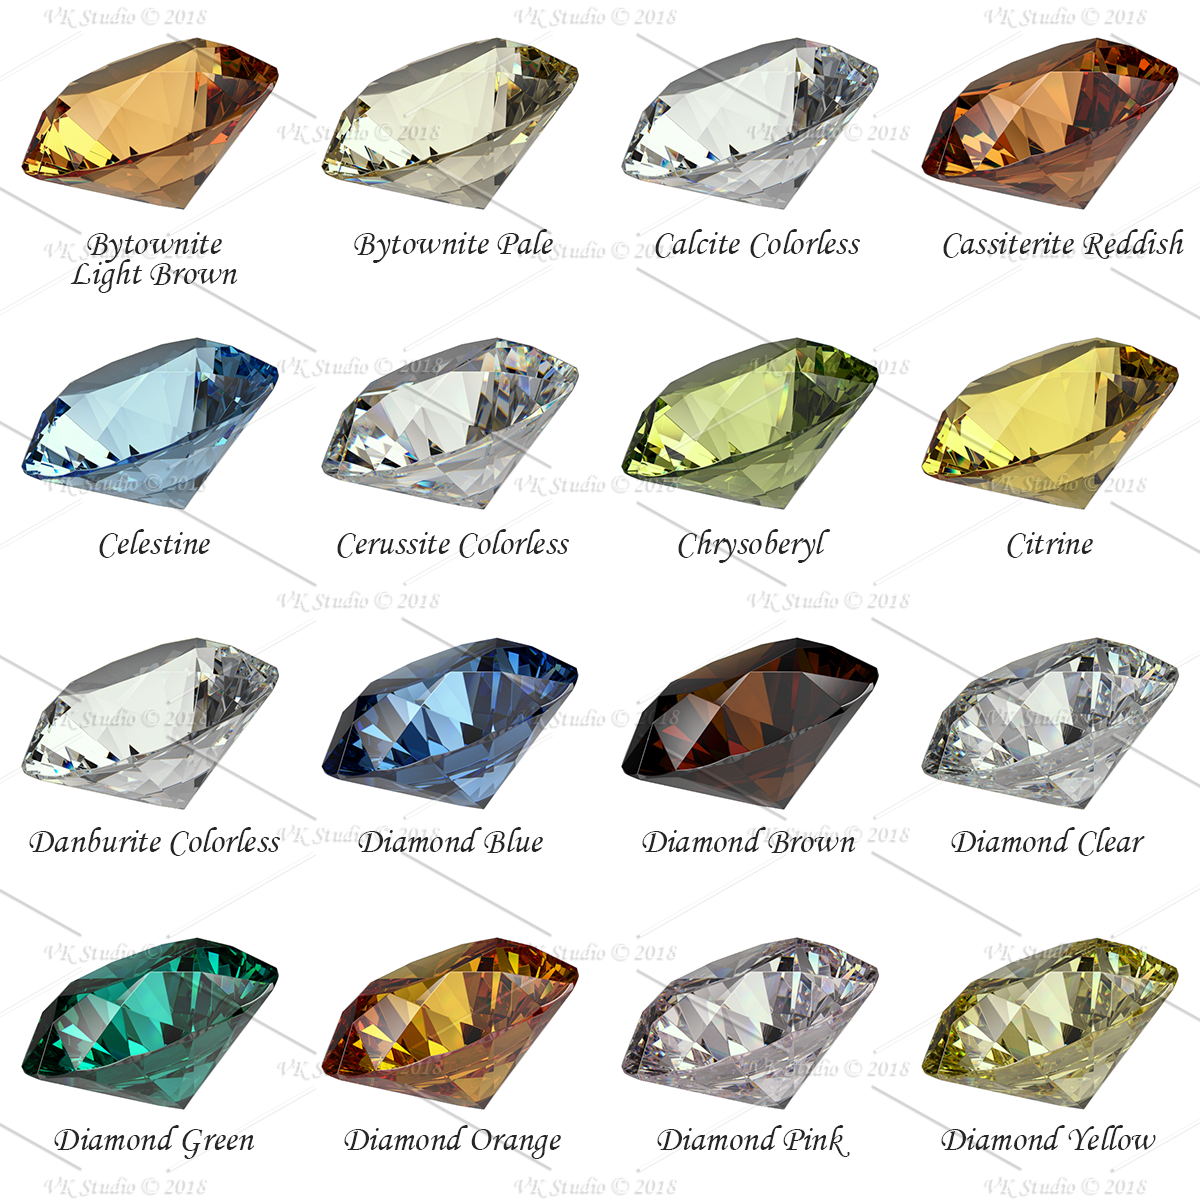 gemstone materials ultimate for v-ray and 3ds max 3d model max png 282427